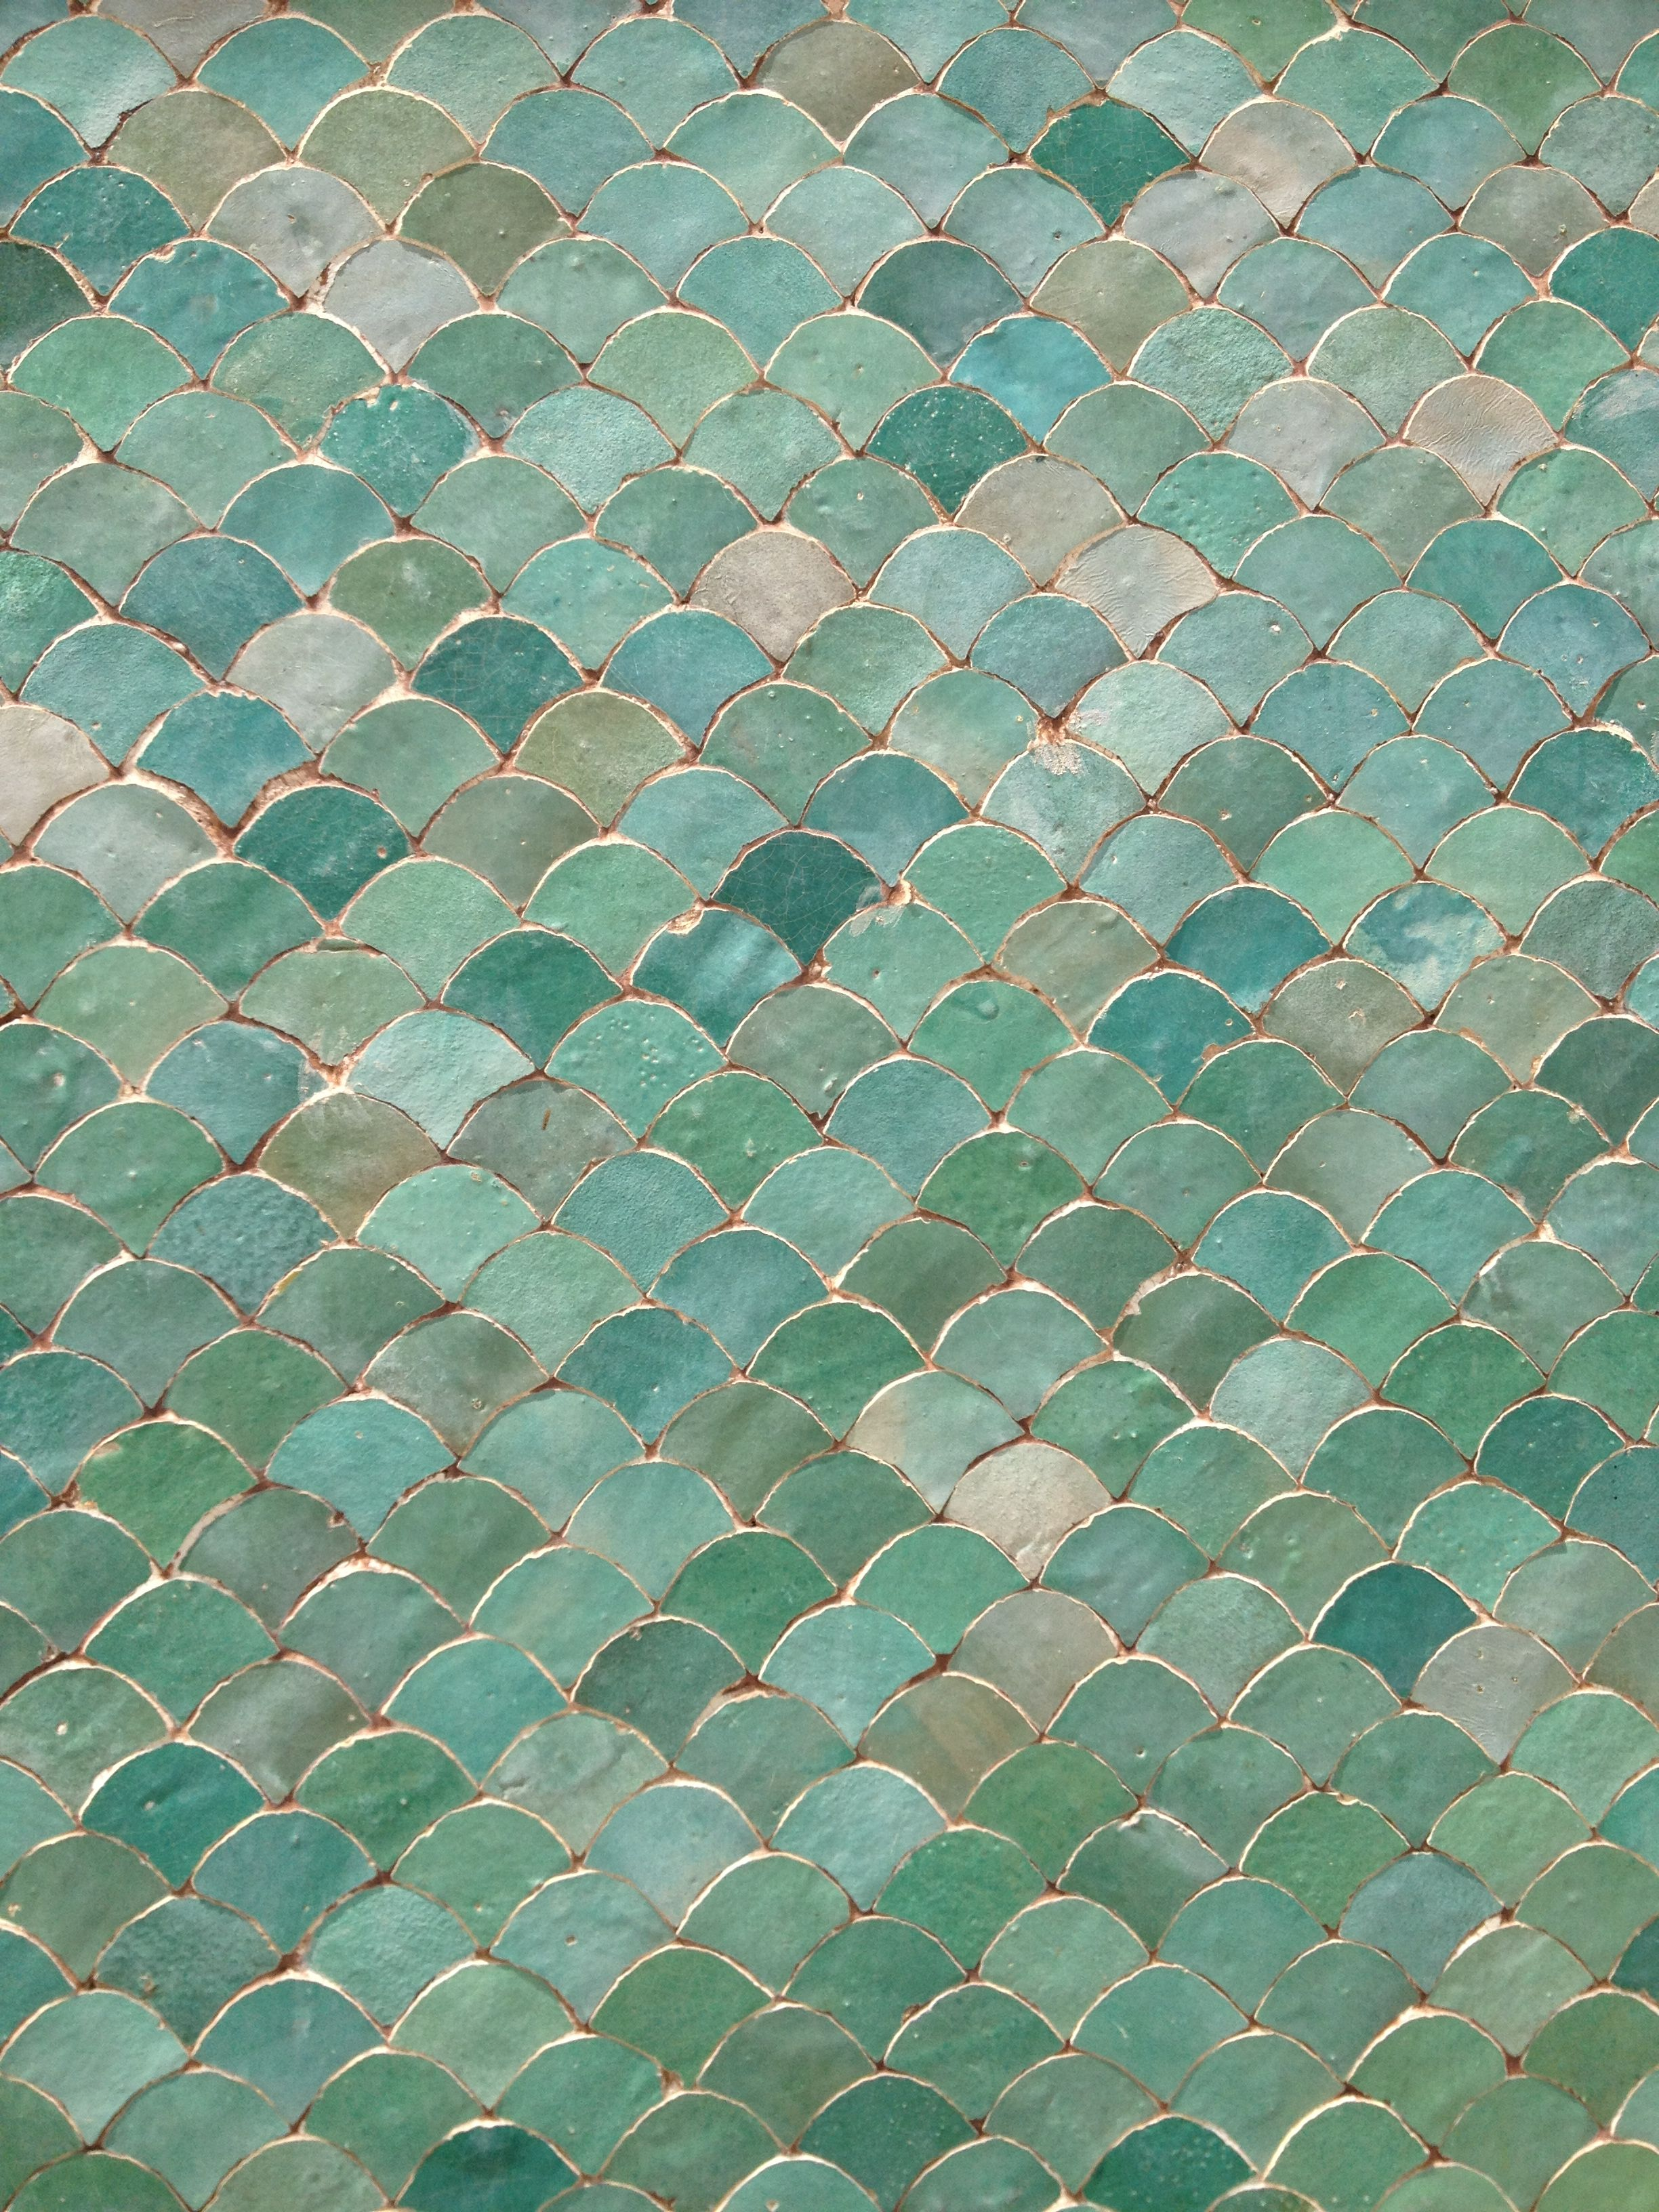 Charmant Aqua Tiles In Marrakech #Morocco #scales This Would Look So Great As The  Kitchen